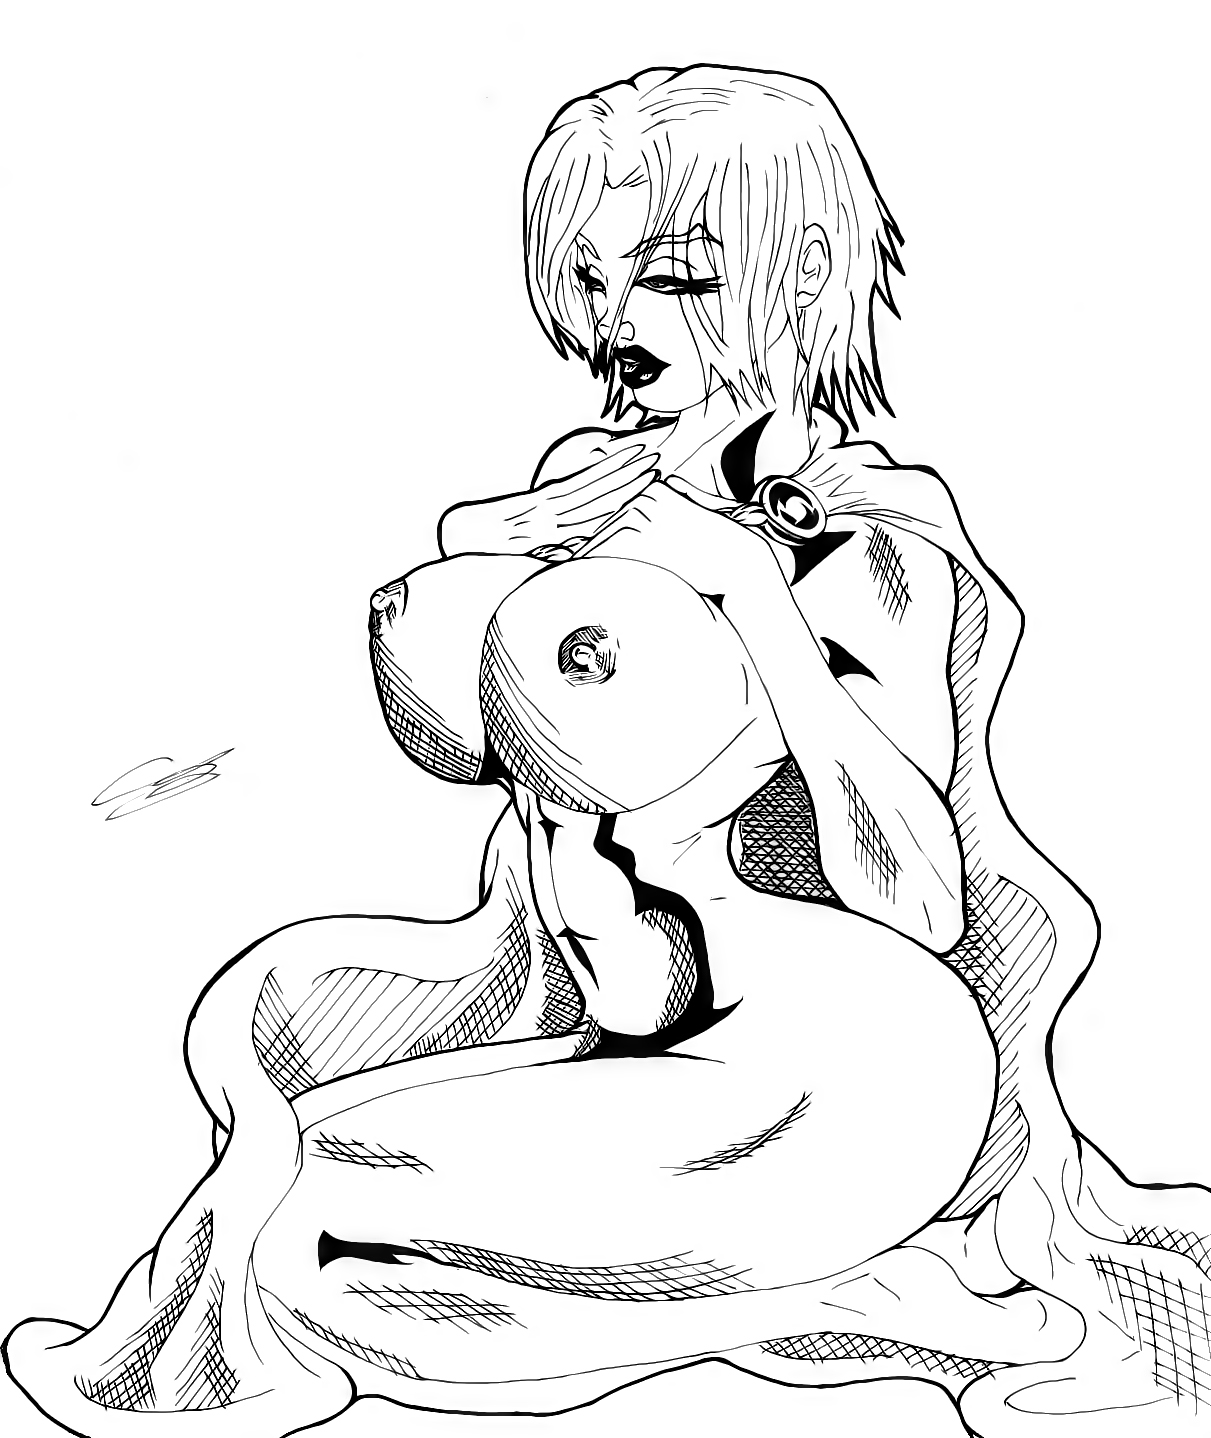 Power Girl with BOOBS